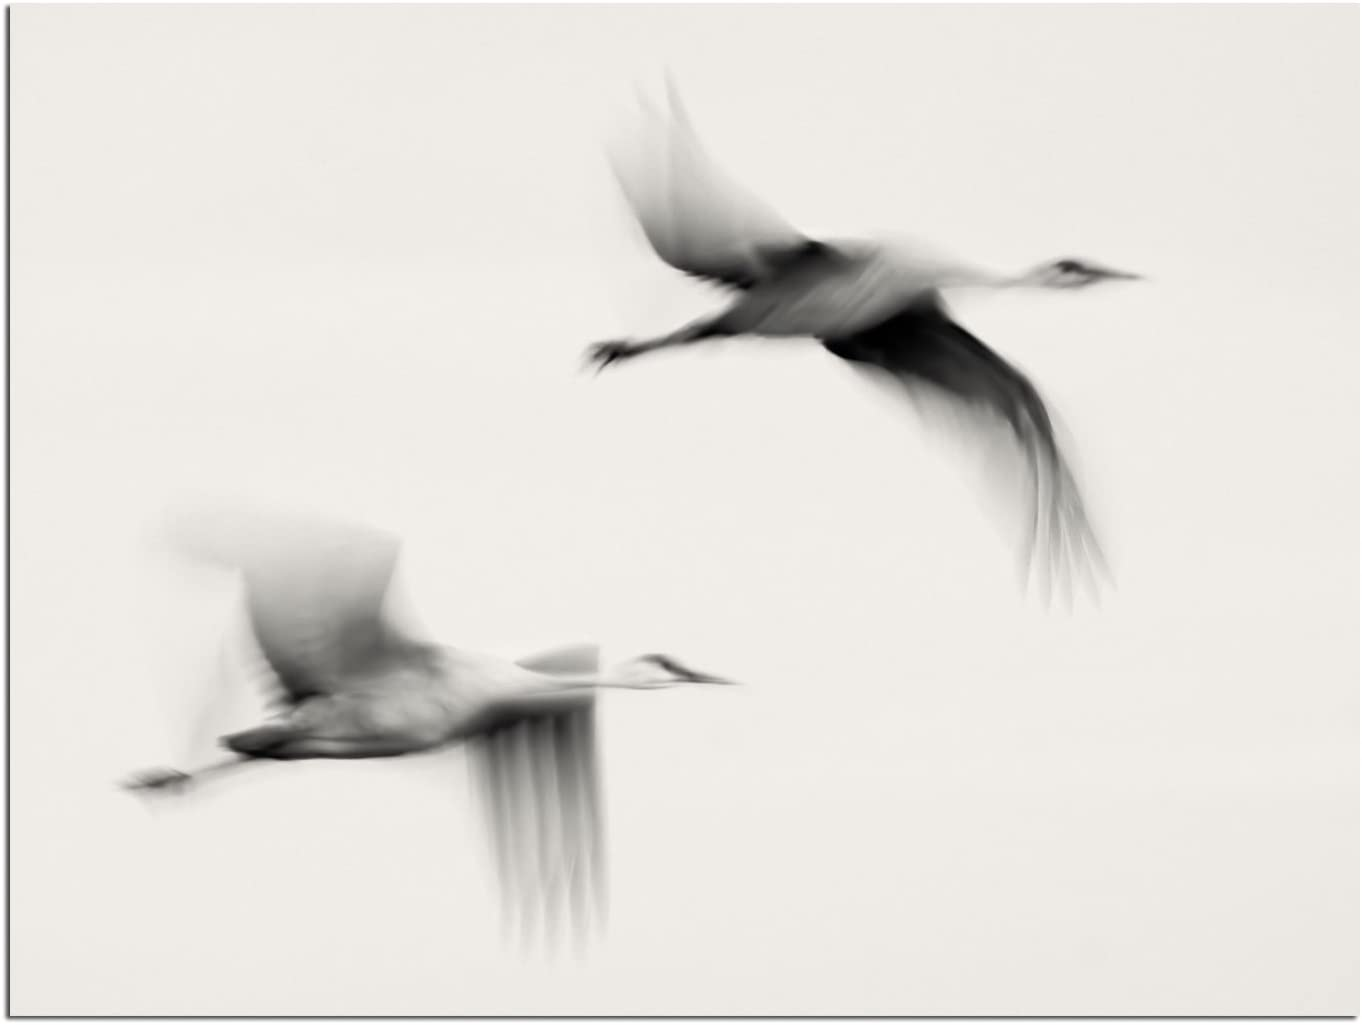 JP London Solvent Free Print PAPXS1X47896 Dreams Nature Crane Bird Fly Wind Ready to Frame Poster Wall Art 8 by 10